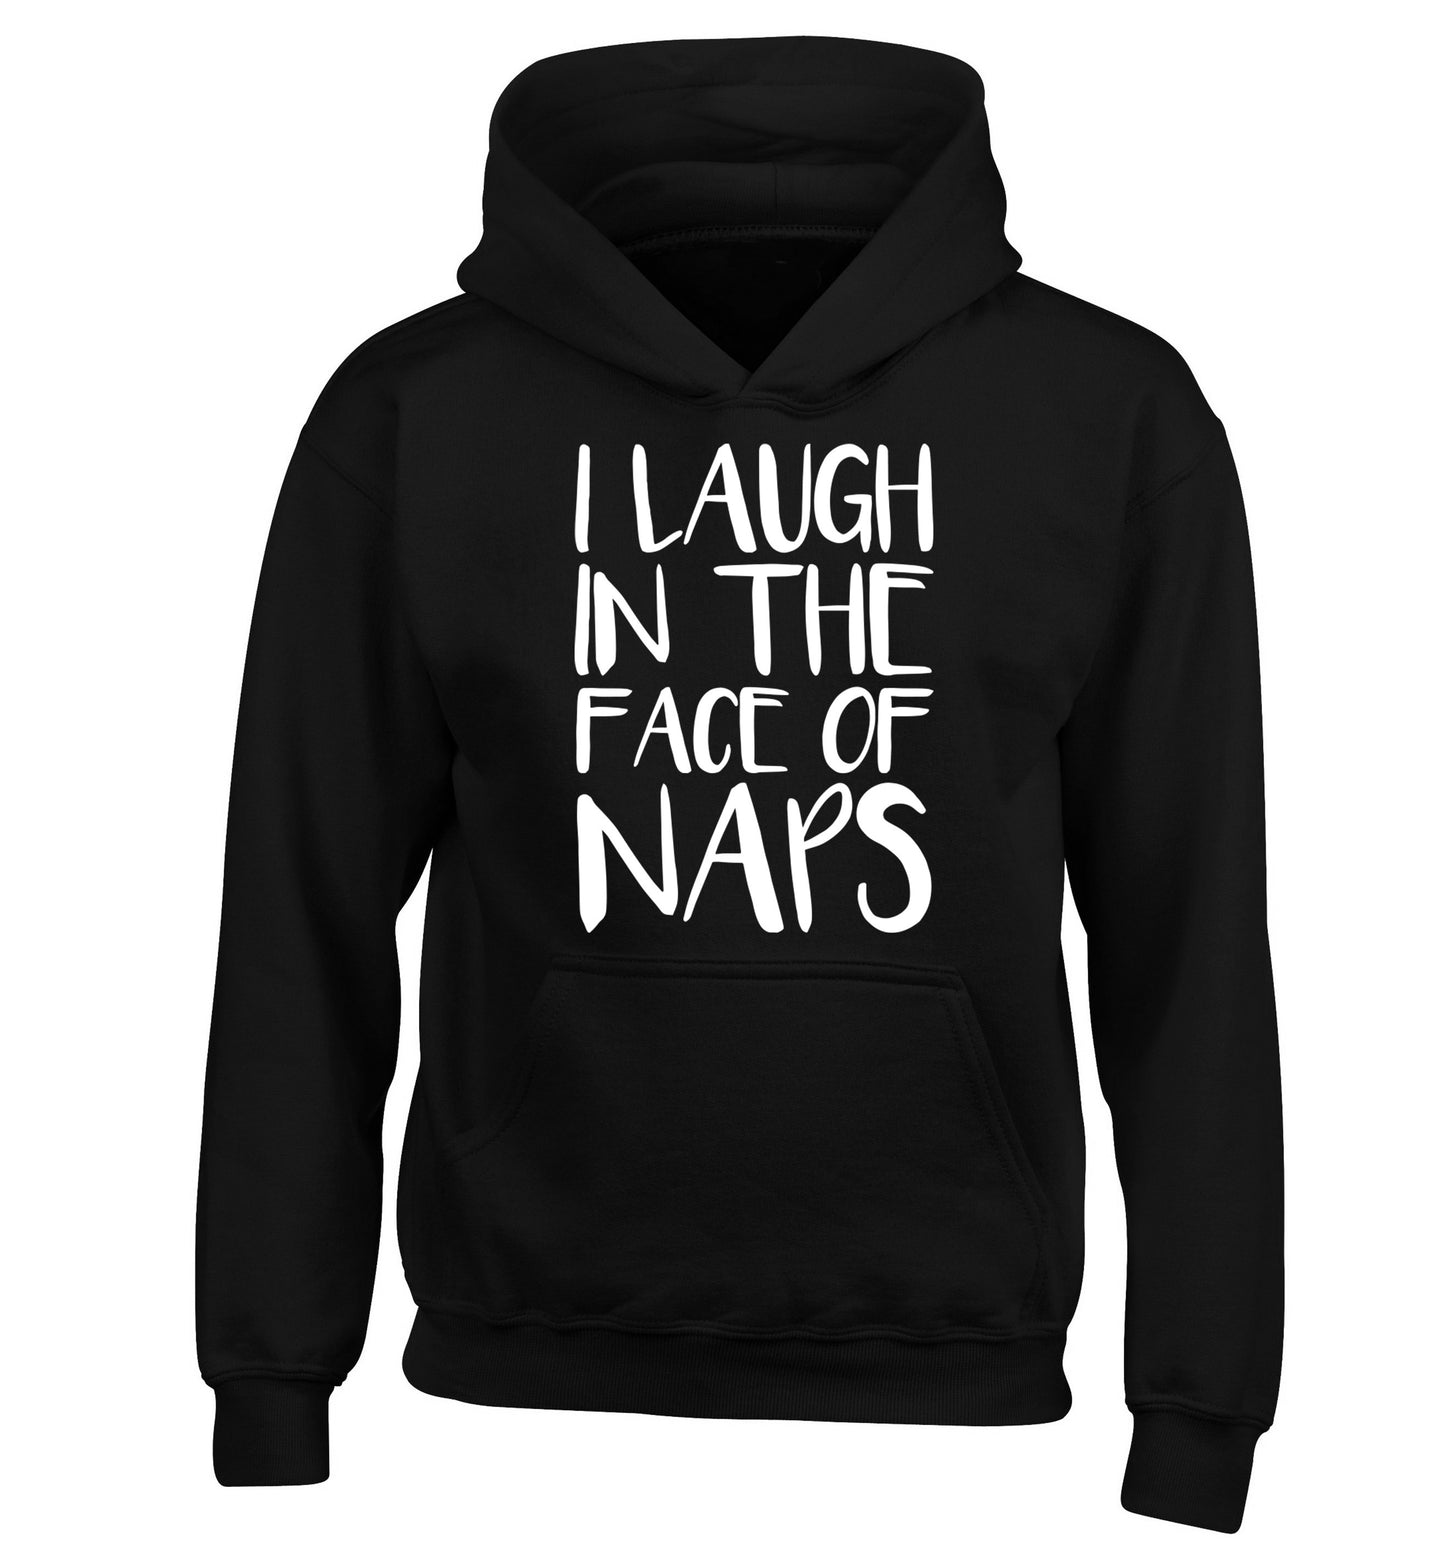 I laugh in the face of naps children's black hoodie 12-14 Years